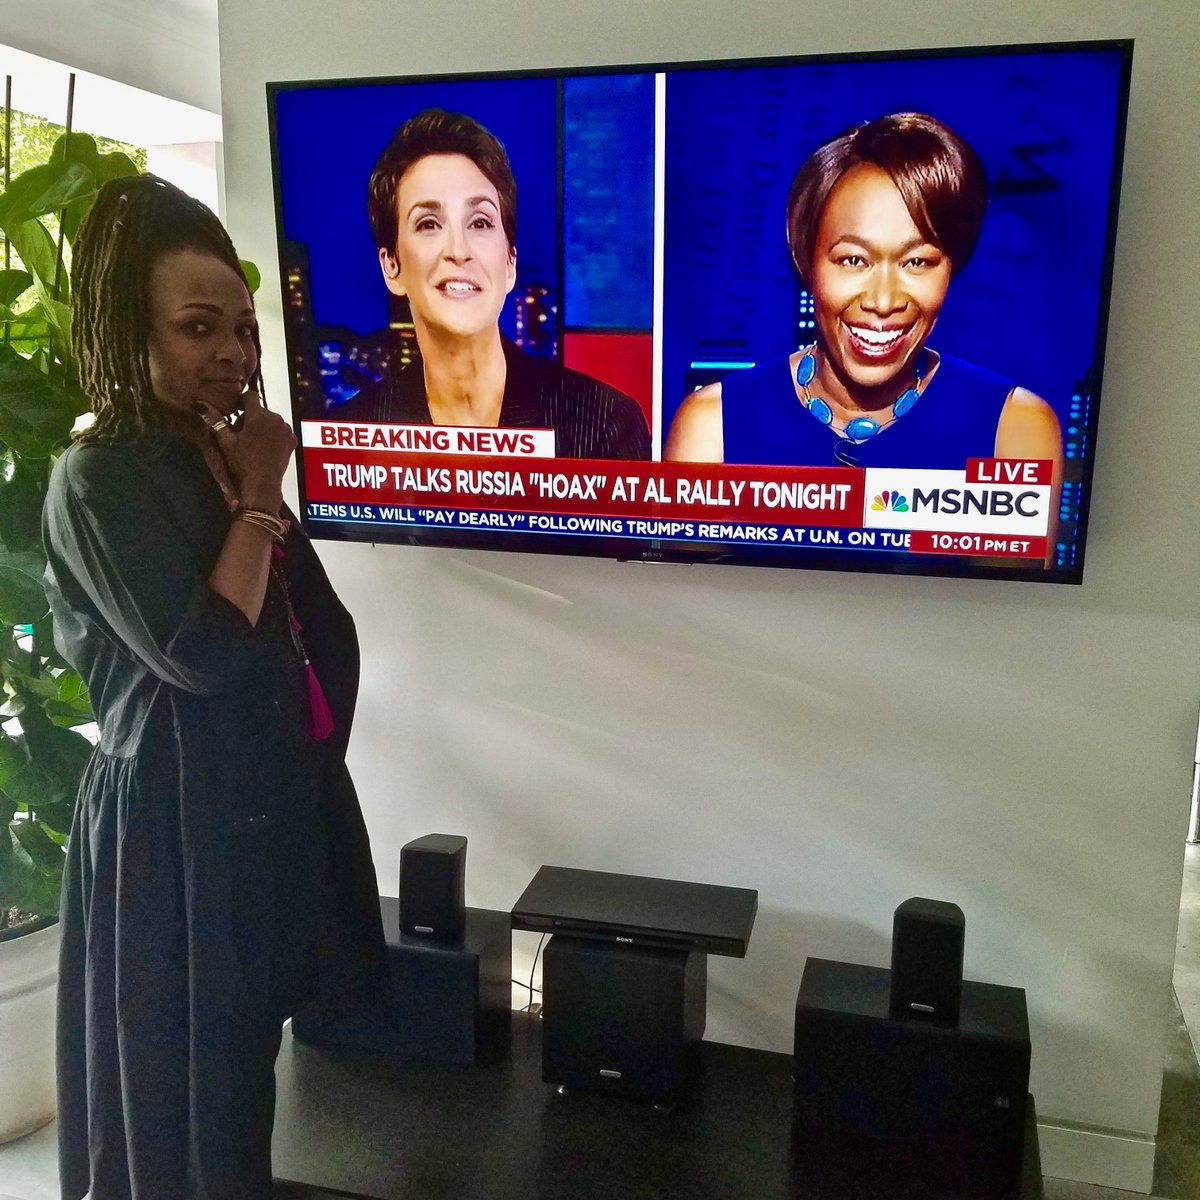 Nobody connects the dots for me like @JoyAnnReid &amp; Rachel @maddow on @msnbc. #maddow #AMJoy #reiders @amjoyshow #news #politics @MaddowBlog <br>http://pic.twitter.com/te8VSoens1